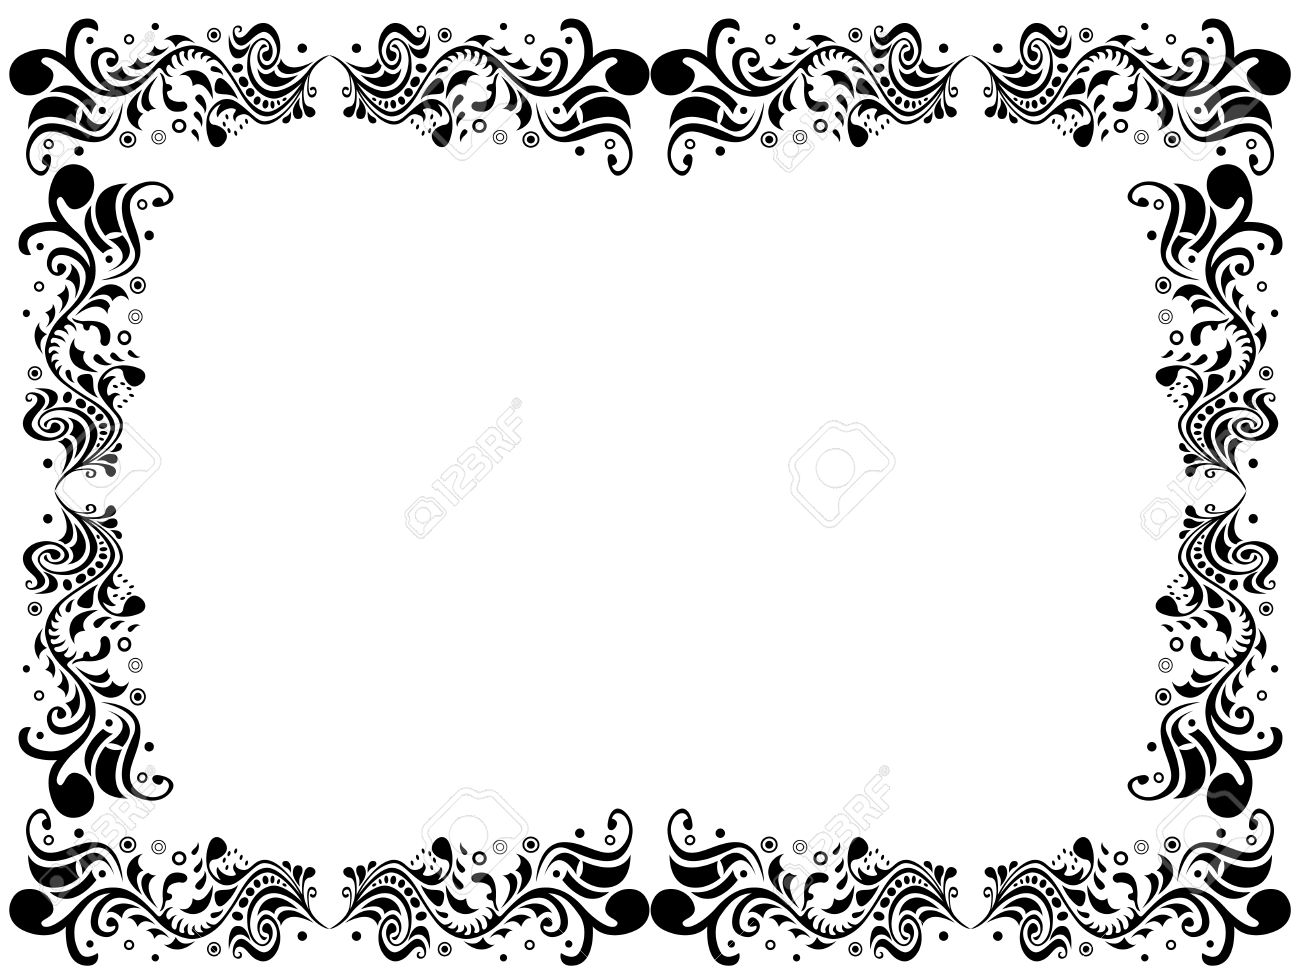 black and white blank border with floral elements hand drawing